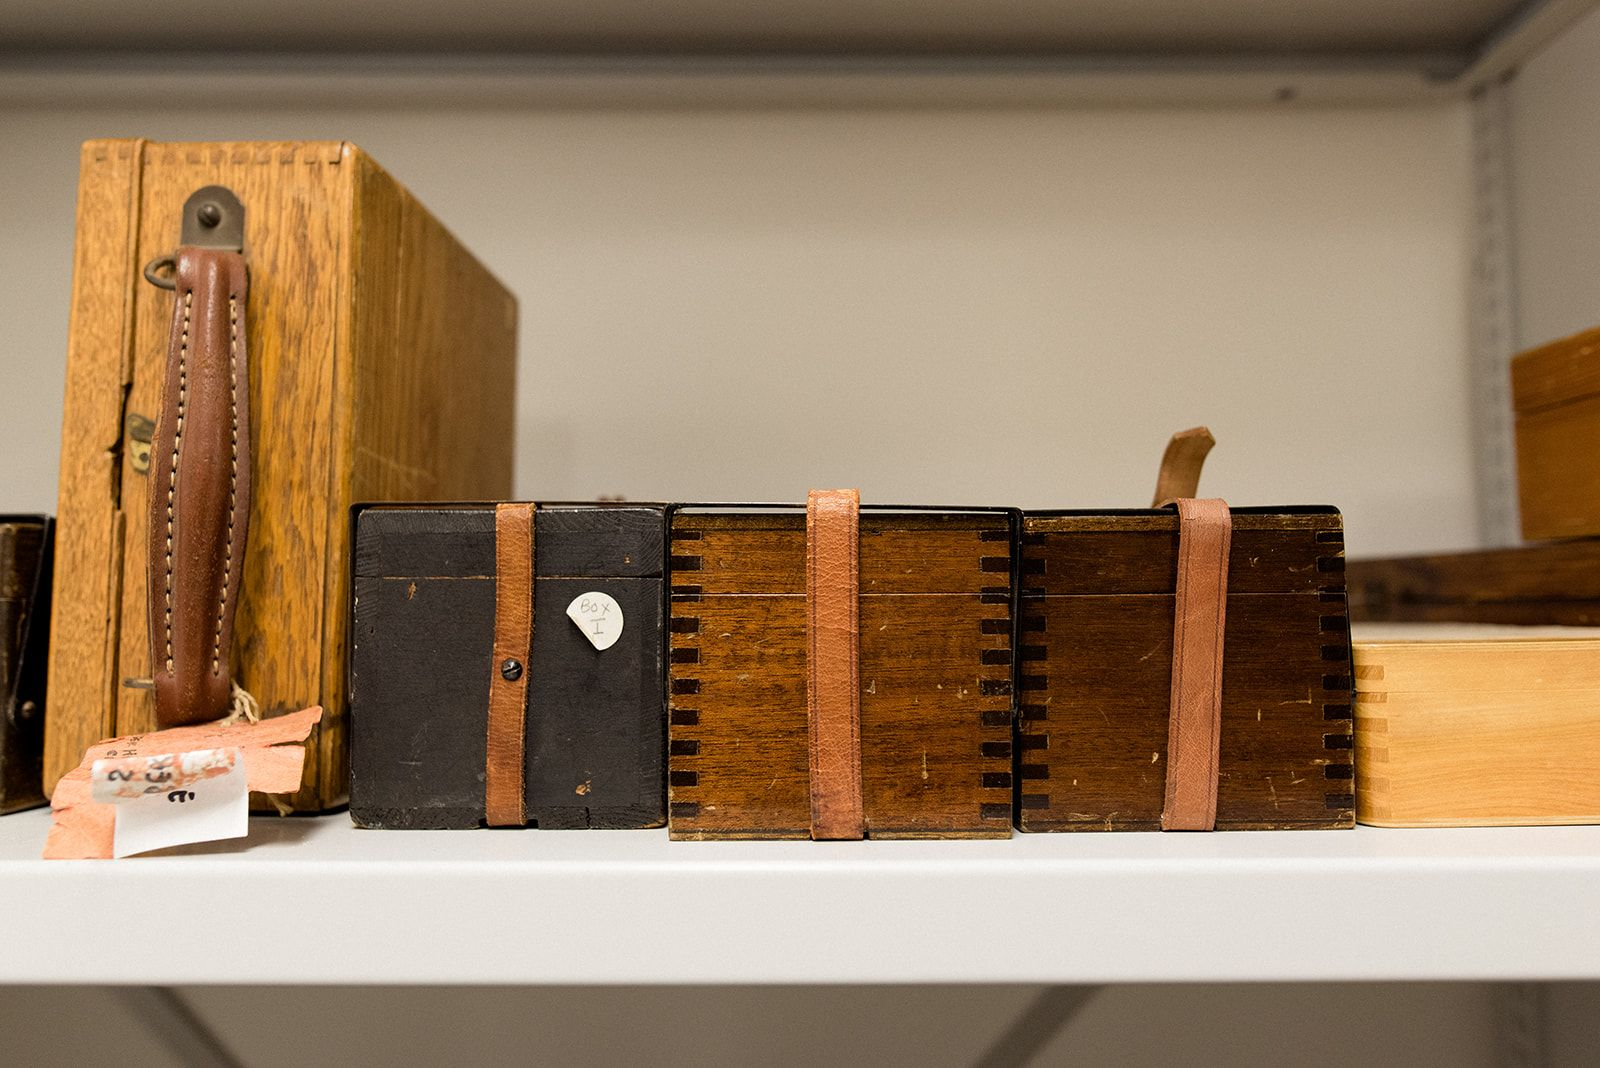 Image shows a variety of wooden storage boxes on a shelf.